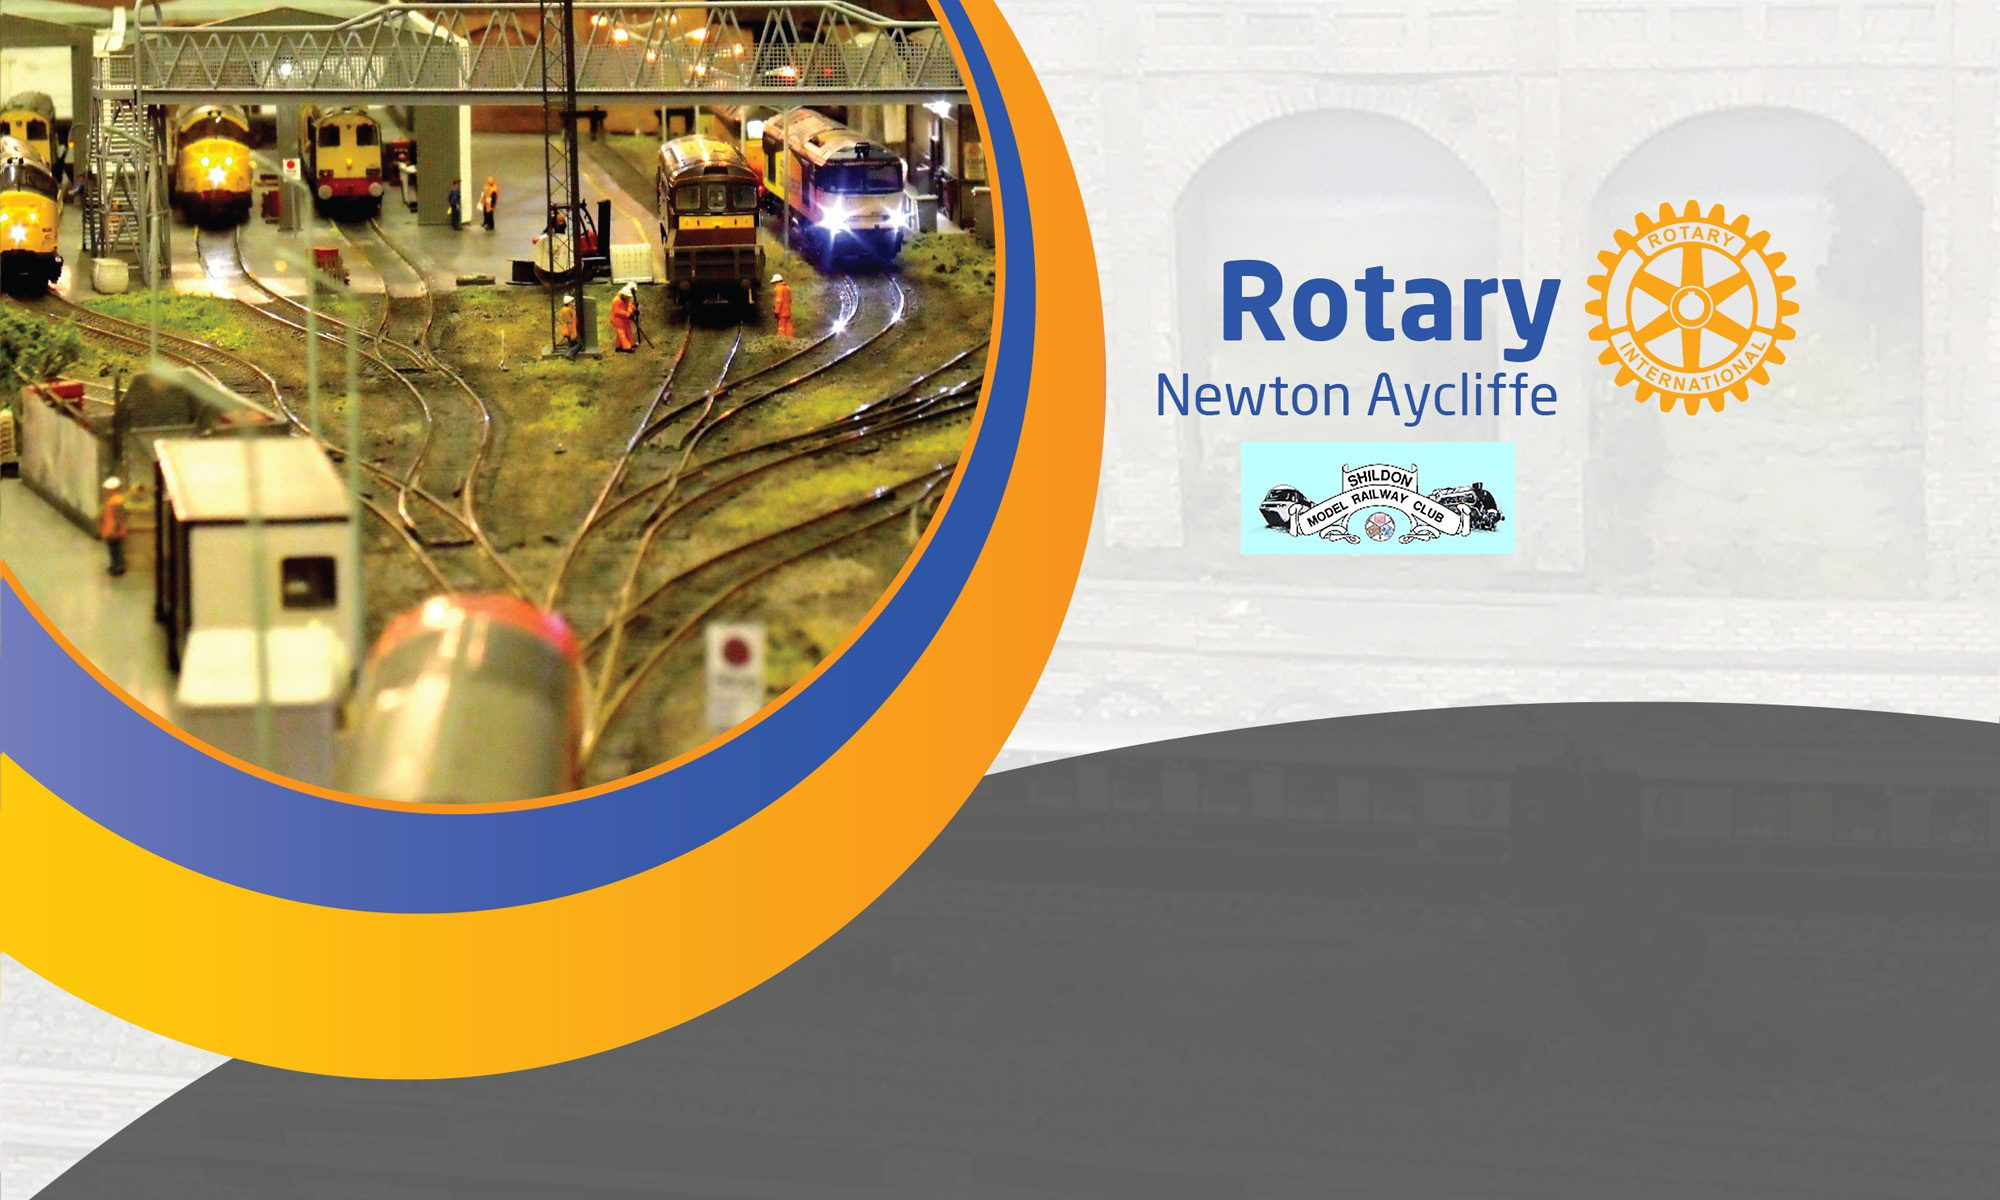 Rotary Newton Aycliffe                        Virtual Railway Exhibition